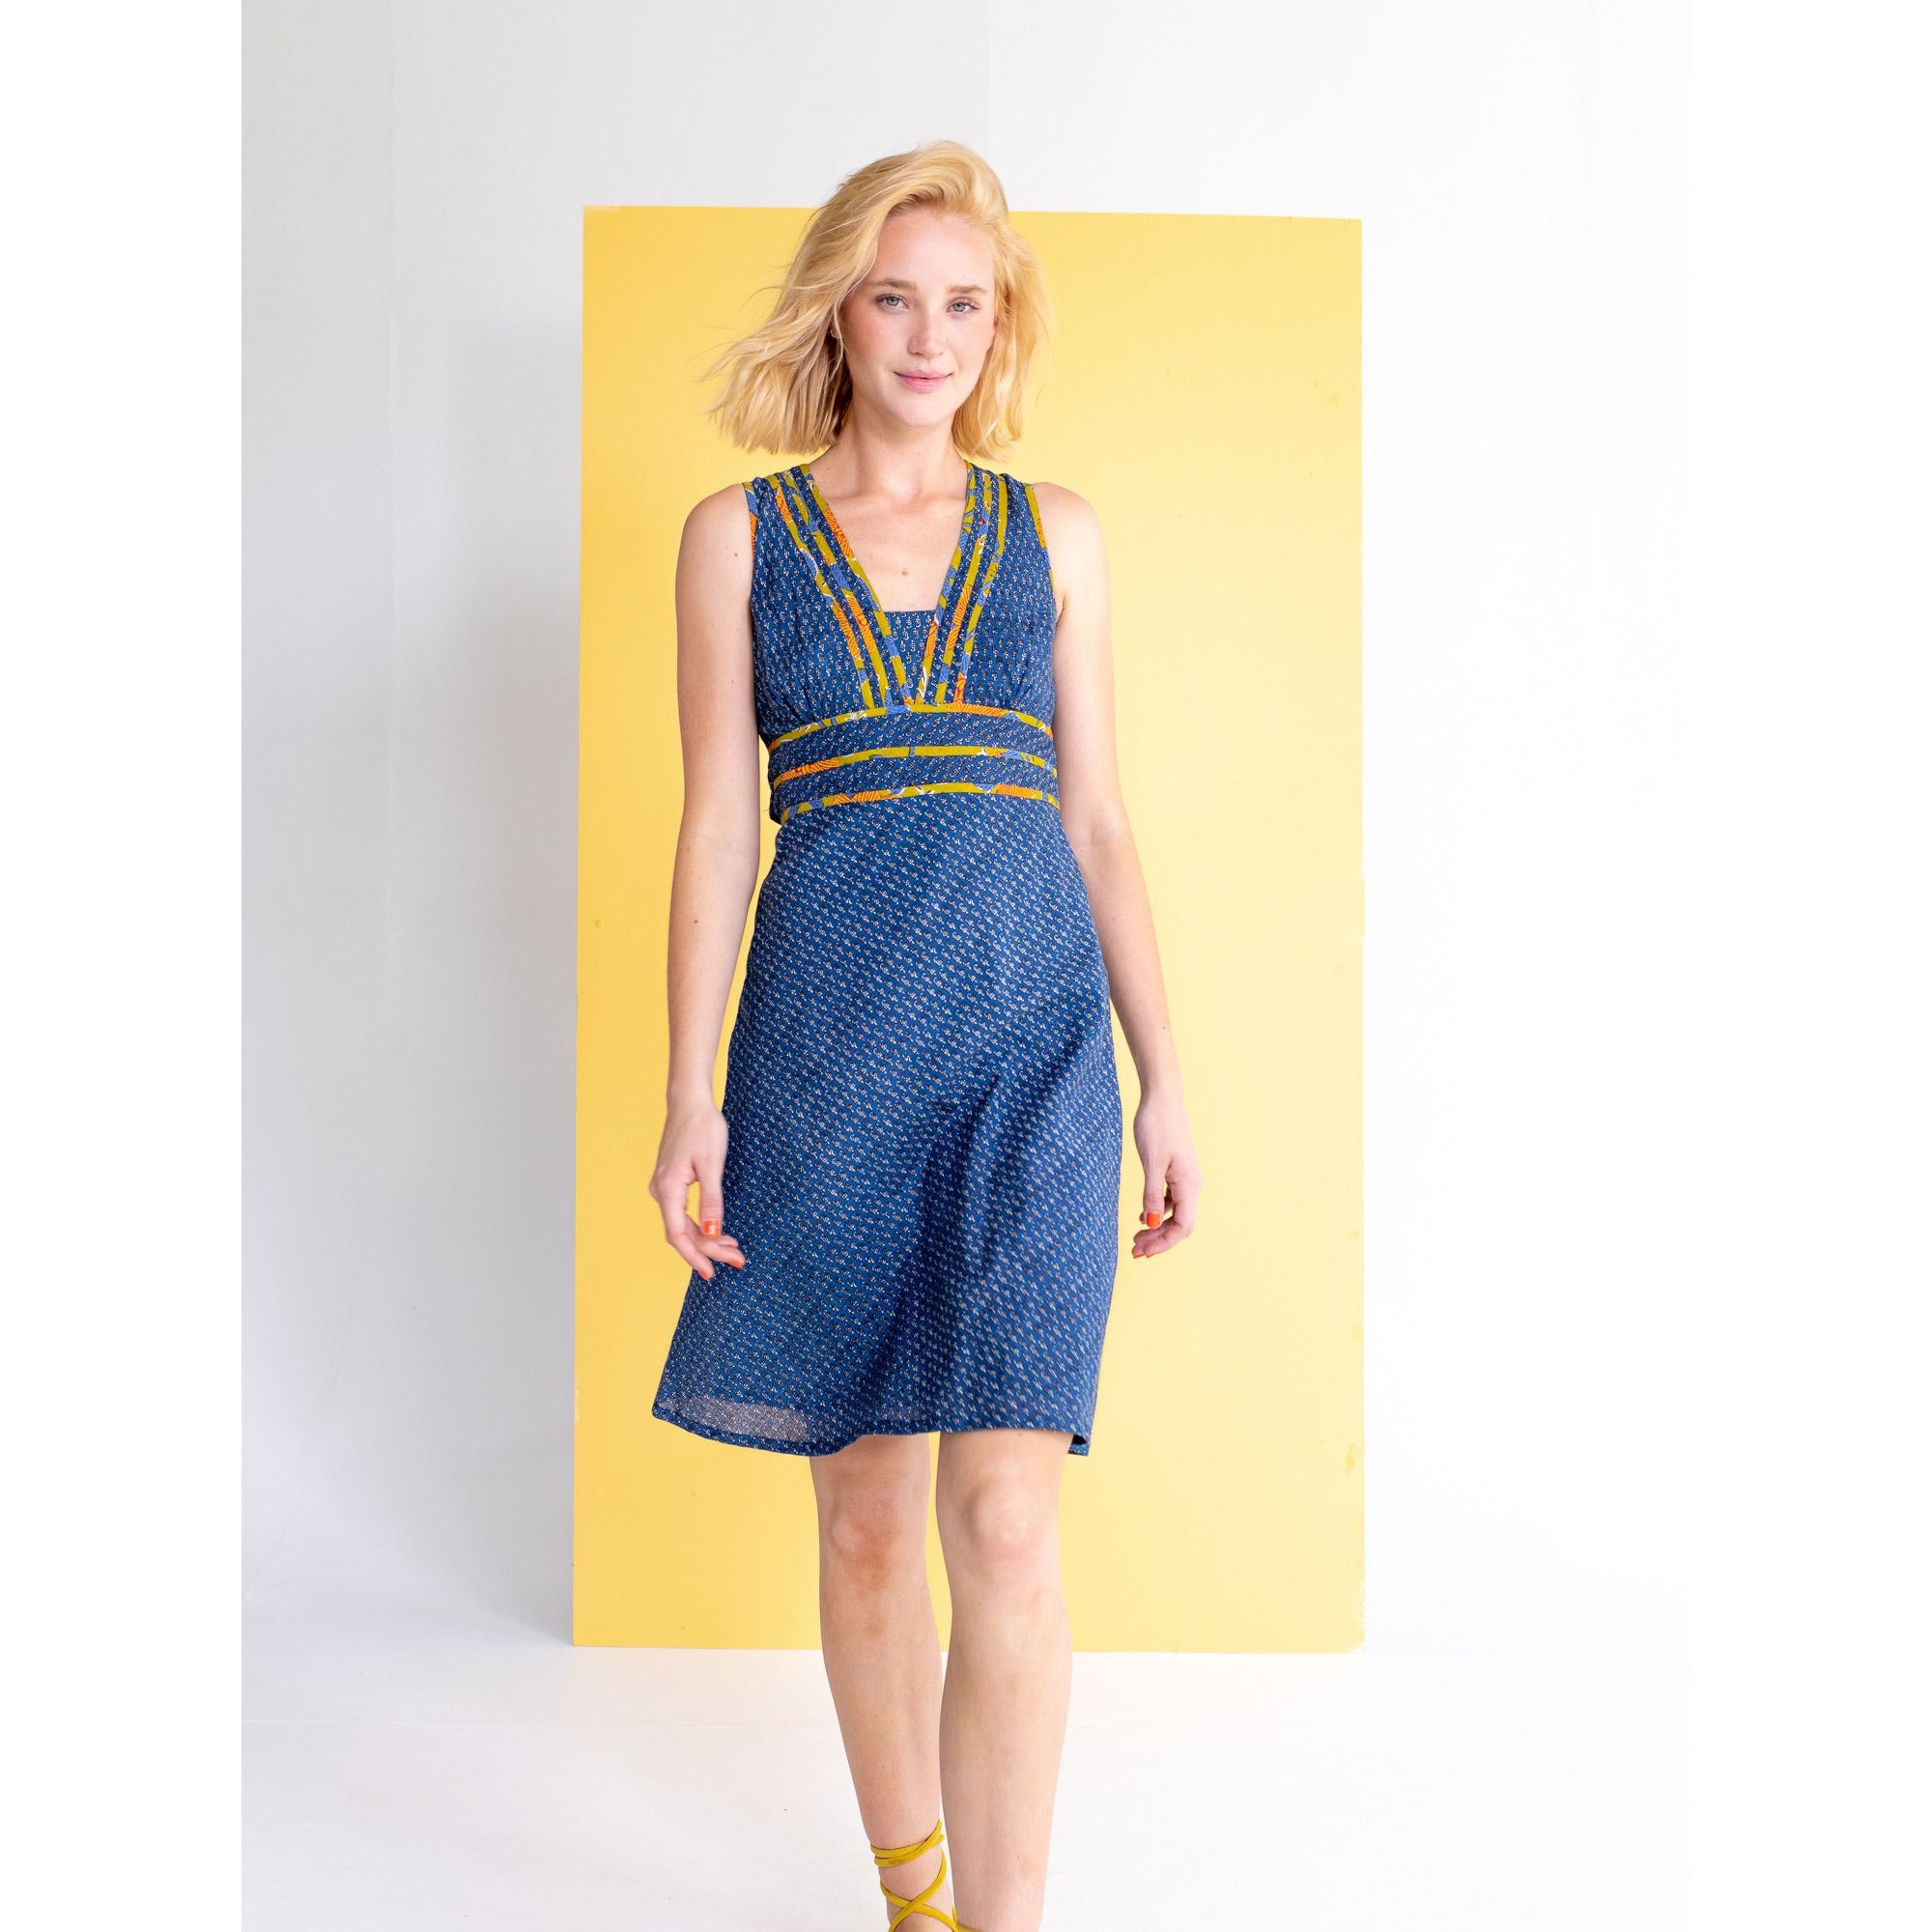 Boom Shankar Olivia Dress in Sapphire block print.